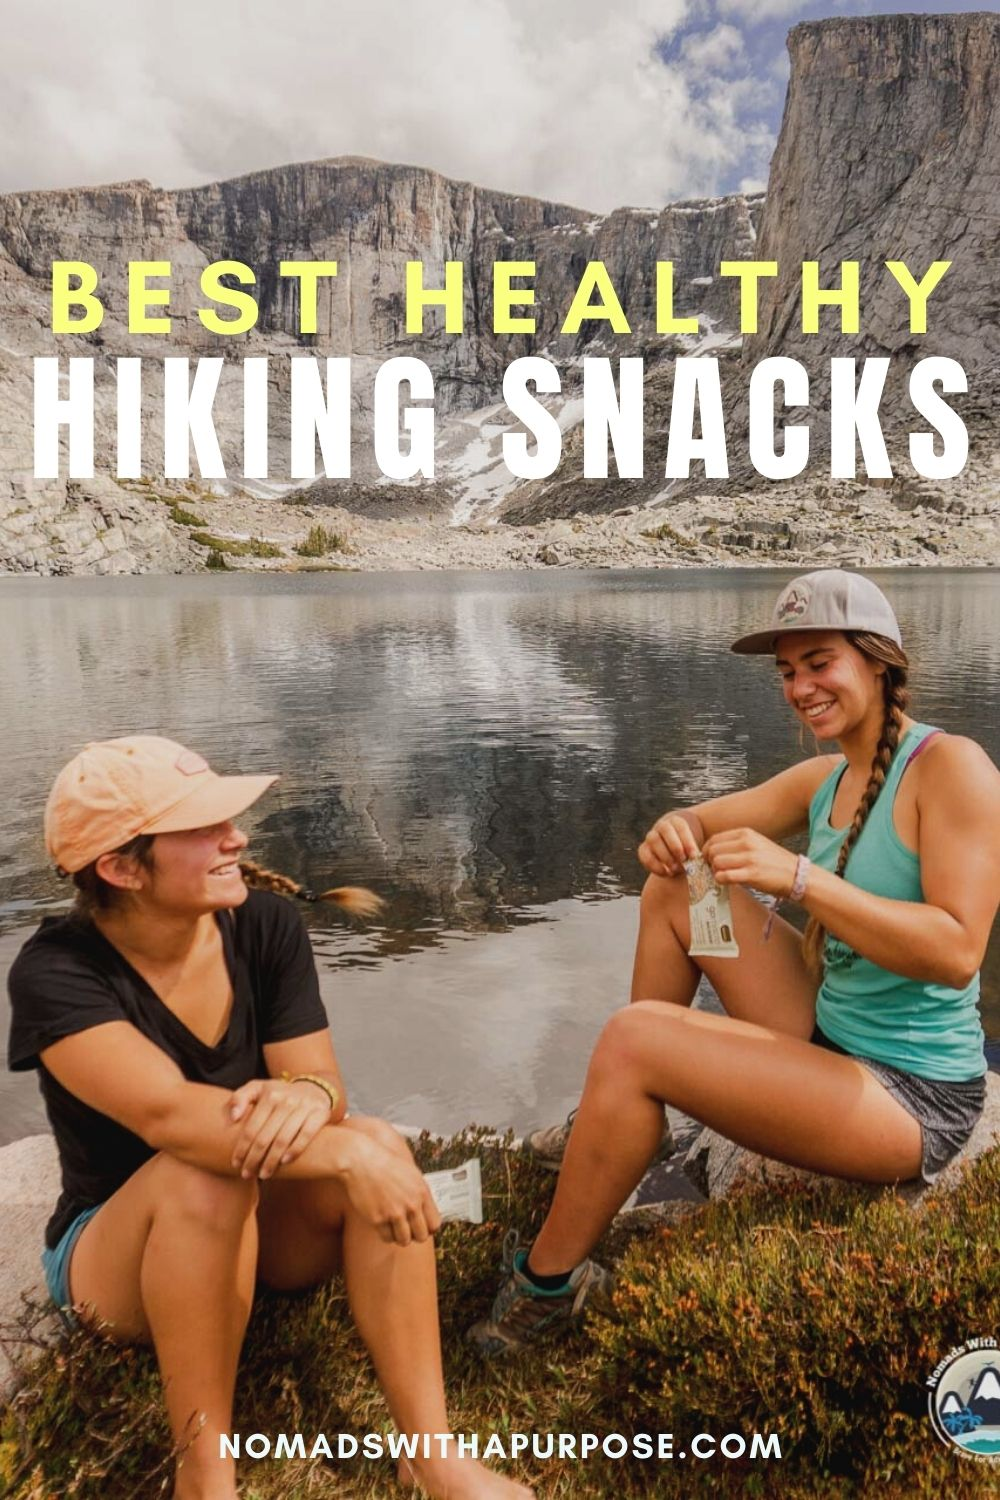 Best Healthy Hiking Snacks